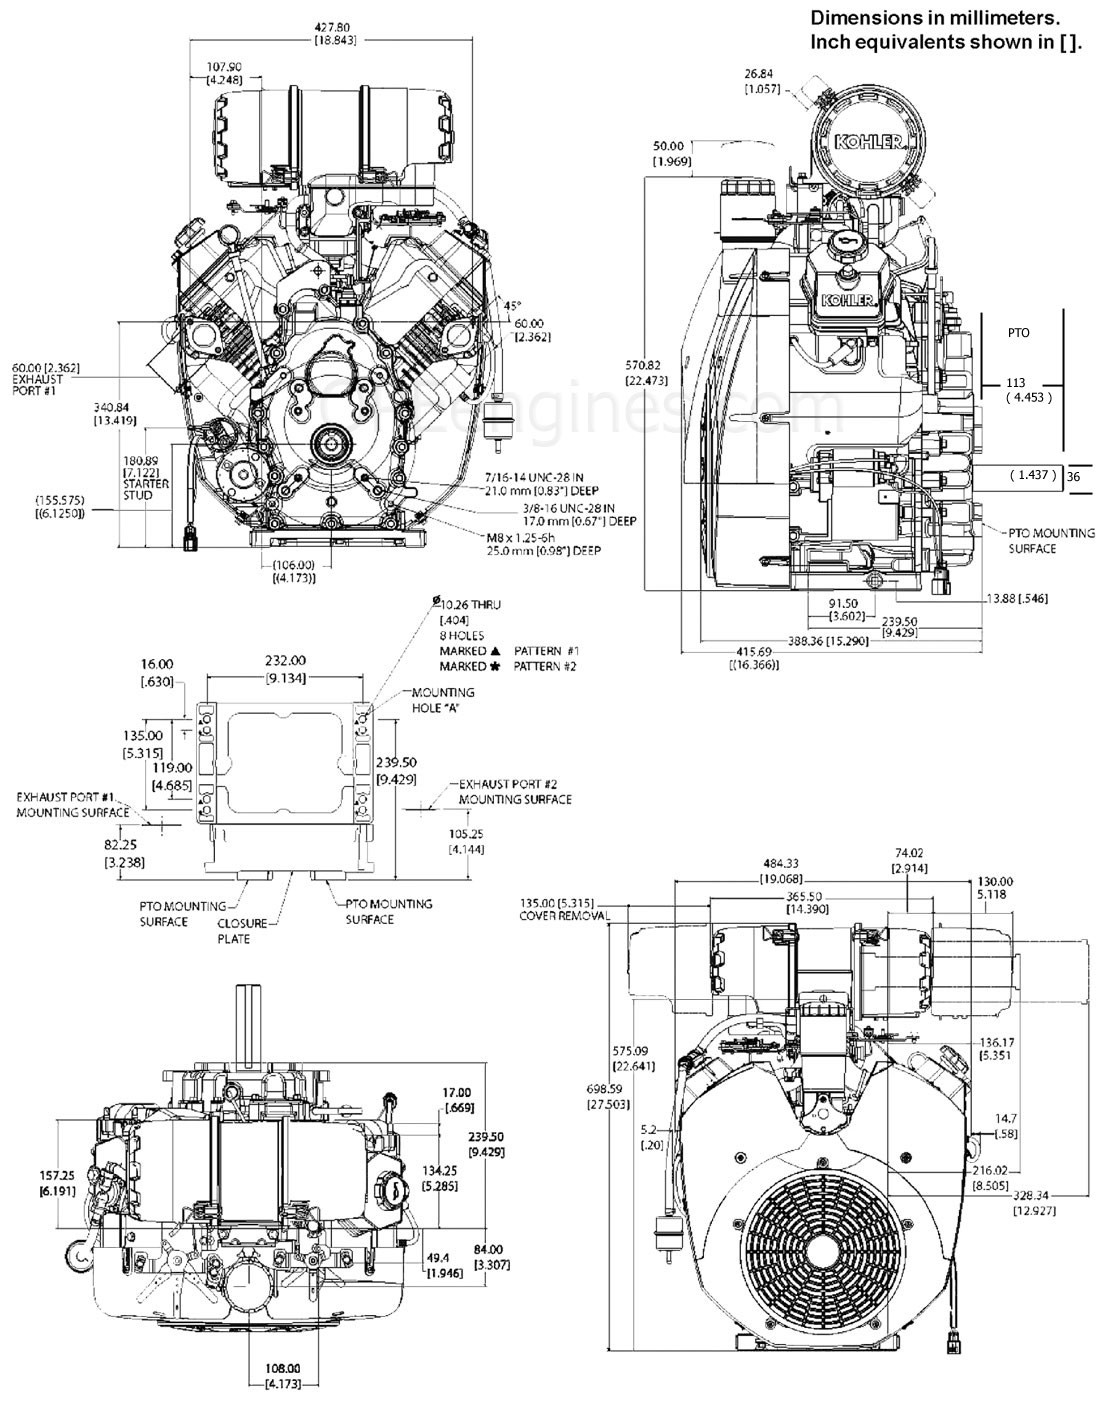 Kohler Courage 19 Hp Sv590 Wiring Diagrams additionally Wiring Schematic 11 13 Hp Honda Engines also Kohler Engine Parts Diagram Divine Bright likewise Engine Controls 9 24 213 further Craftsman Lt1000 Drive Belt. on 25 hp kohler wiring diagram